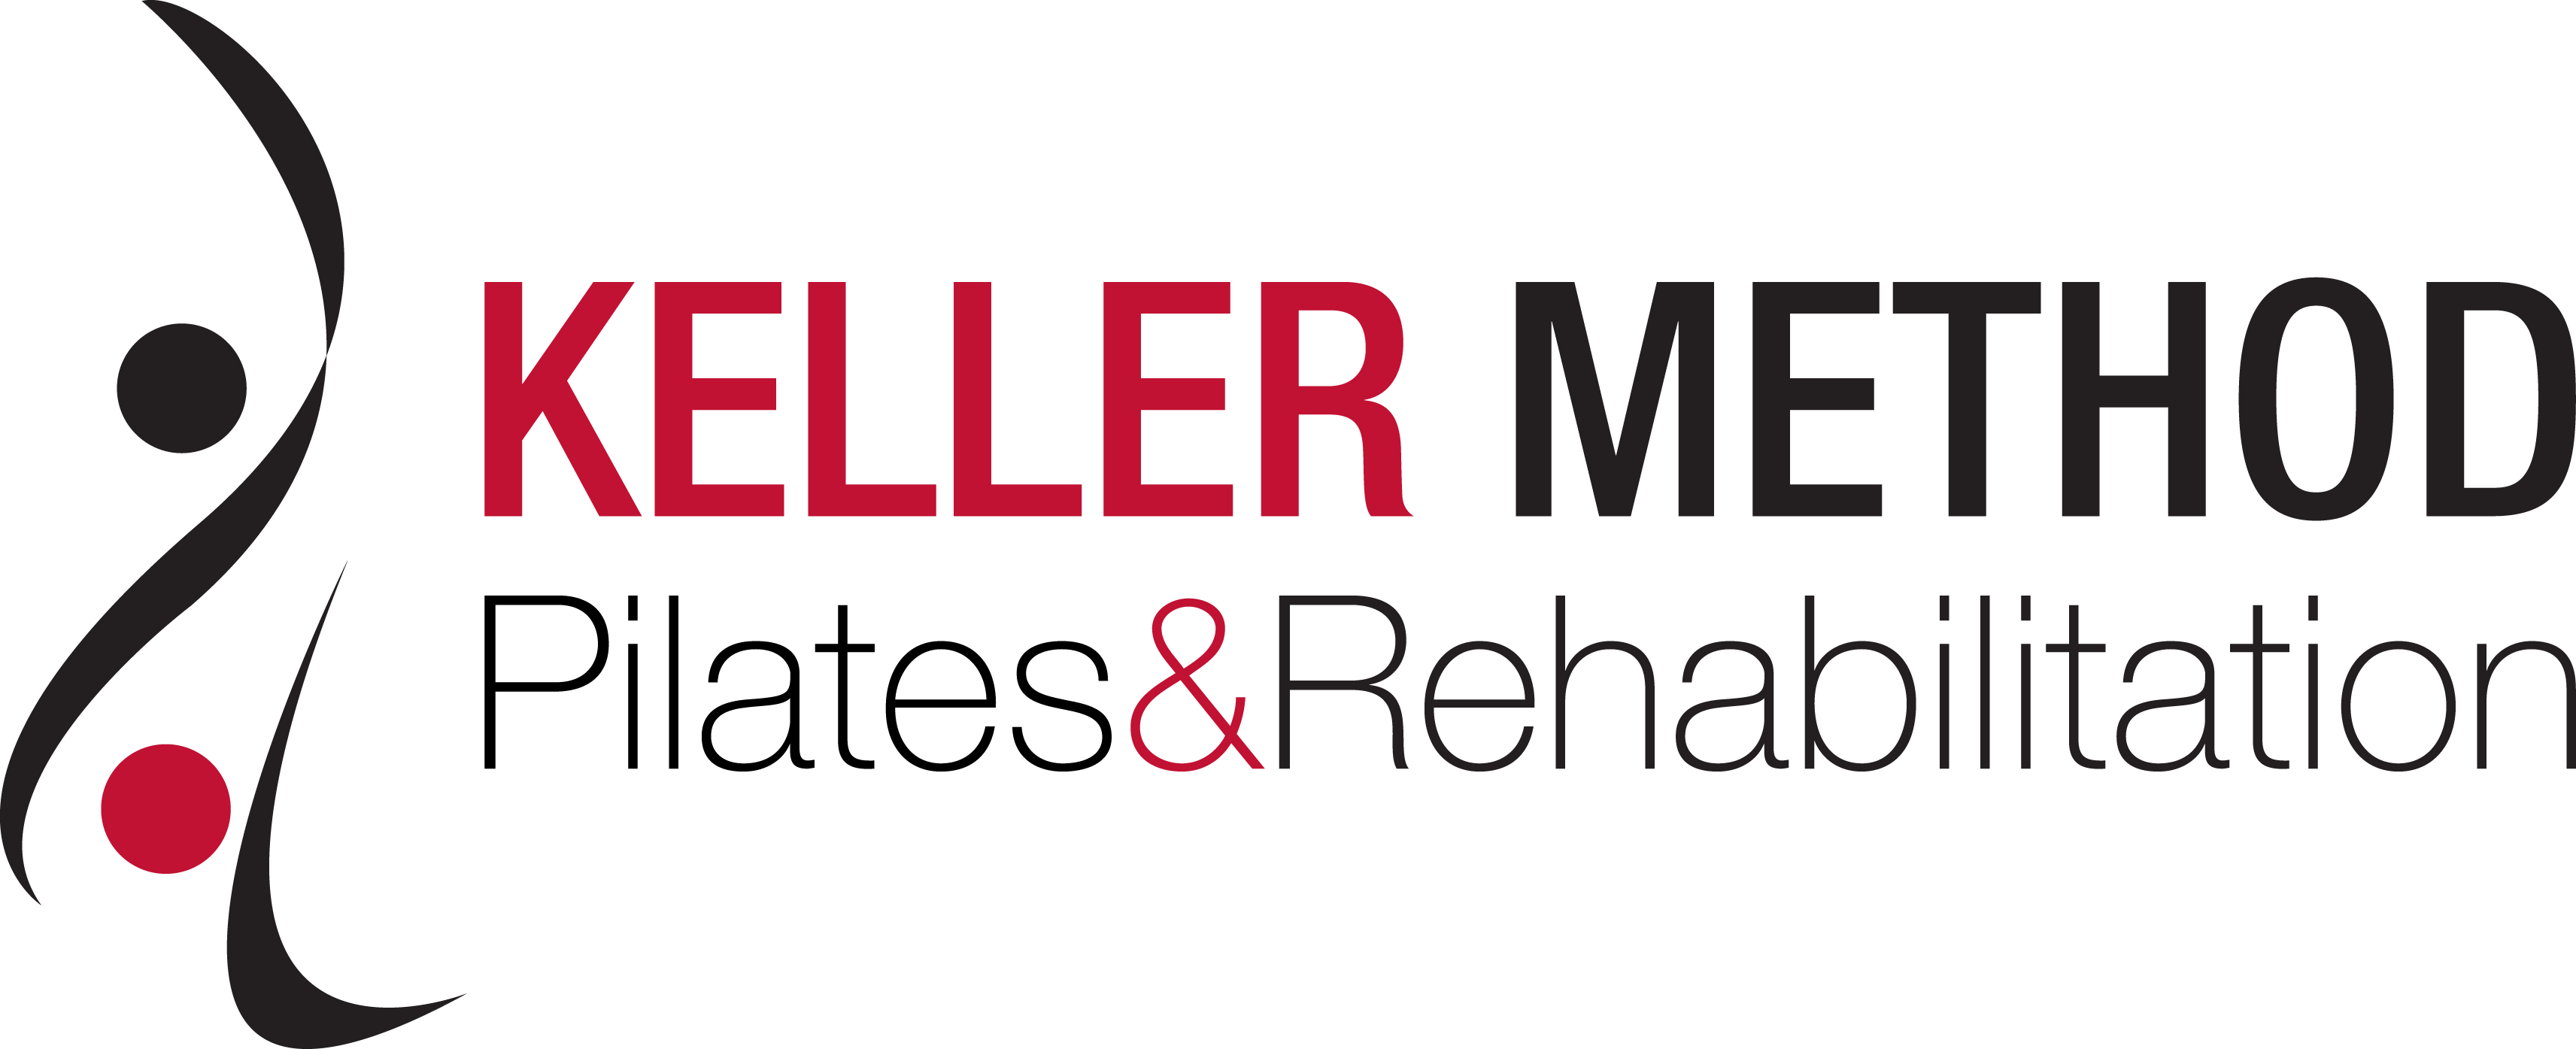 Keller Method Pilates Logo 6